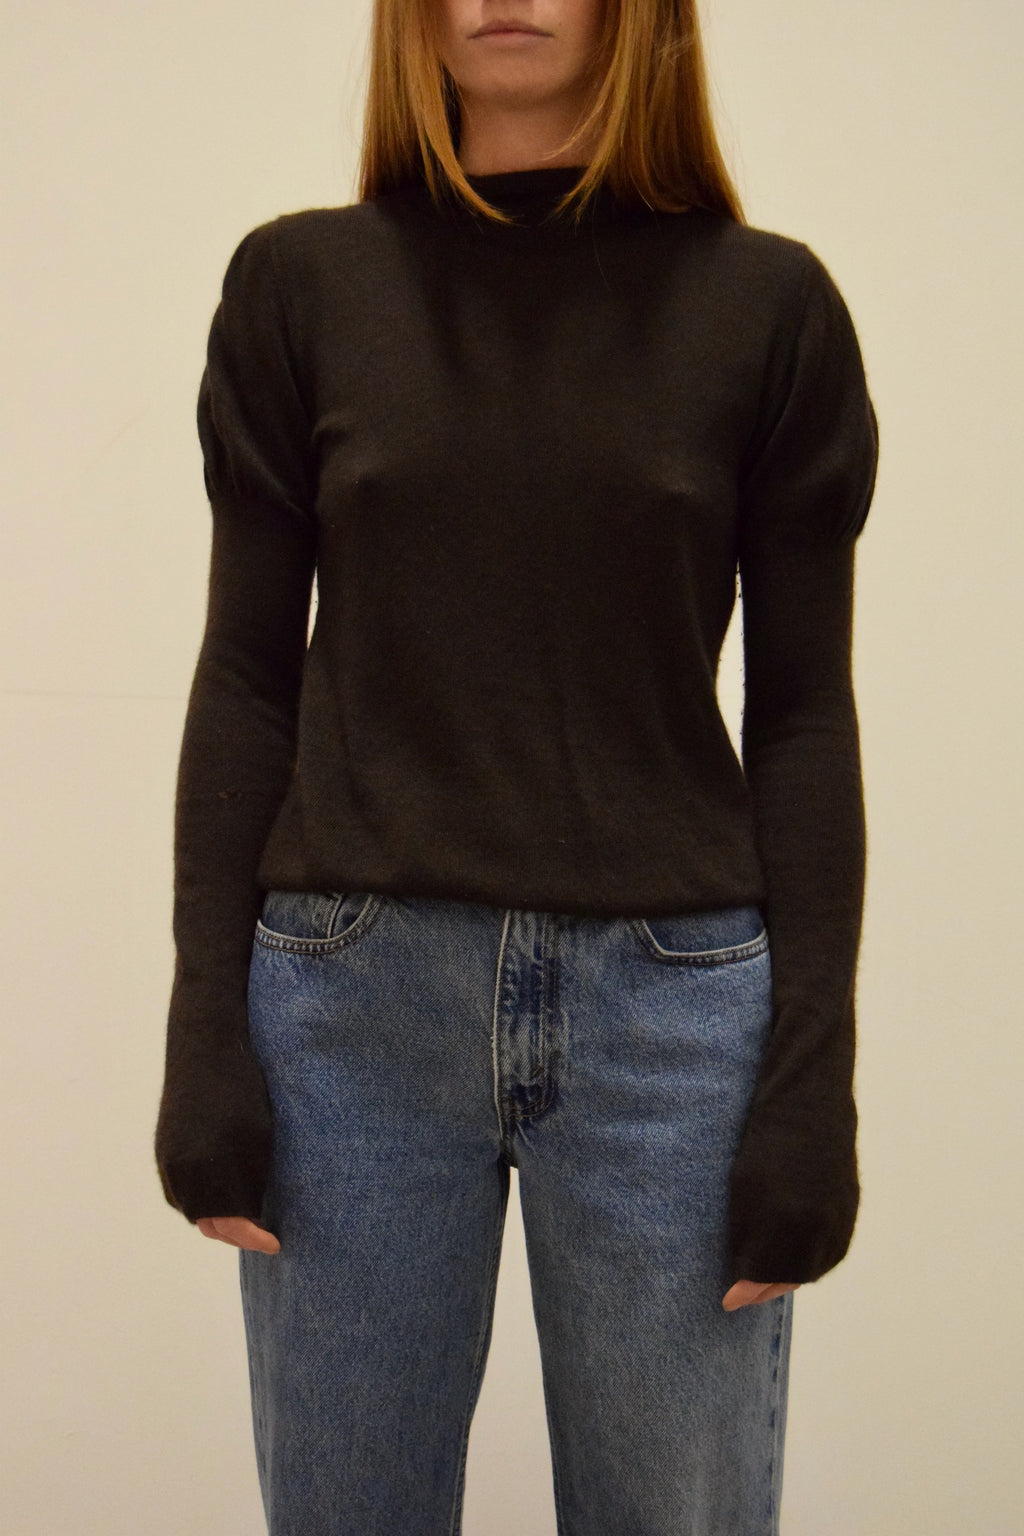 Chocolate Cashmere Prada Knit FREE SHIPPING TO THE U.S.